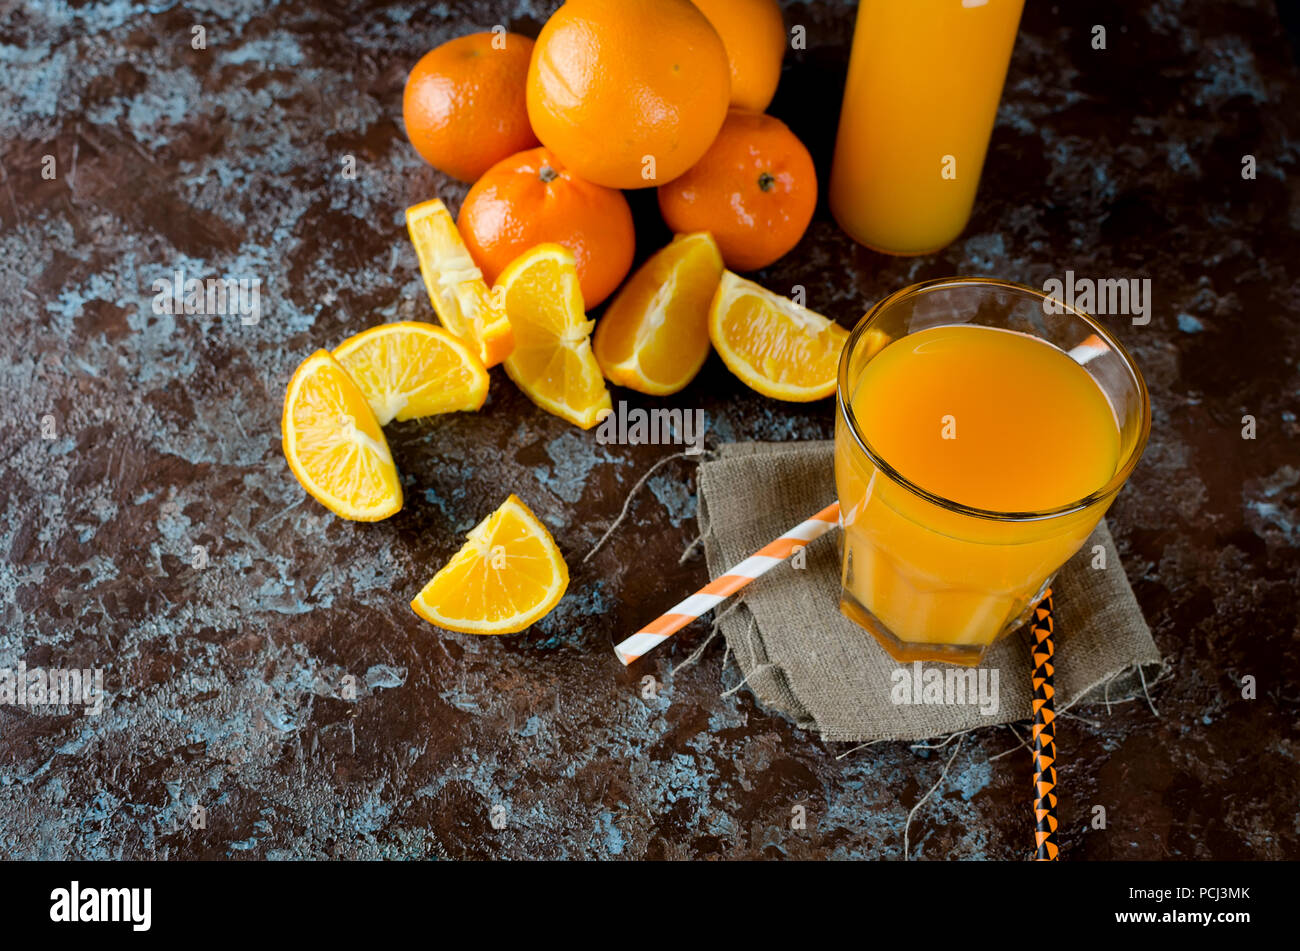 orange juice in a glass and a bottle and pieces of orange on a concrete brown-blue background copy space - Stock Image